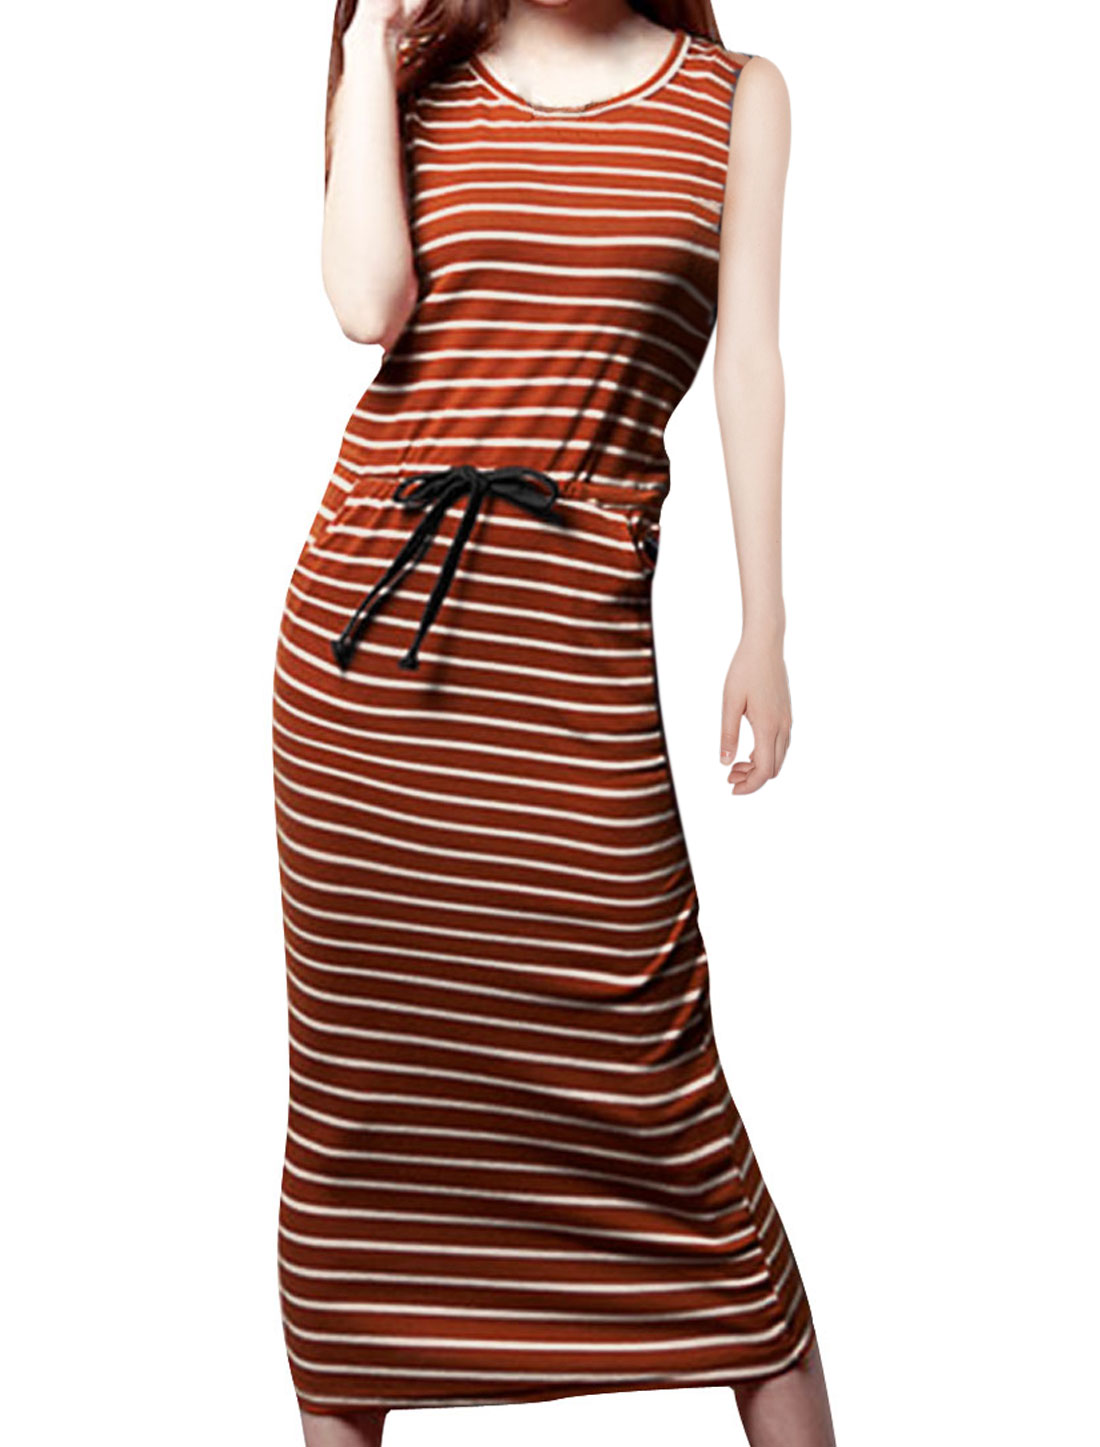 Ladies Round Neck Pockets Sleeveless Straight Elegant Dress Dark Orange XS